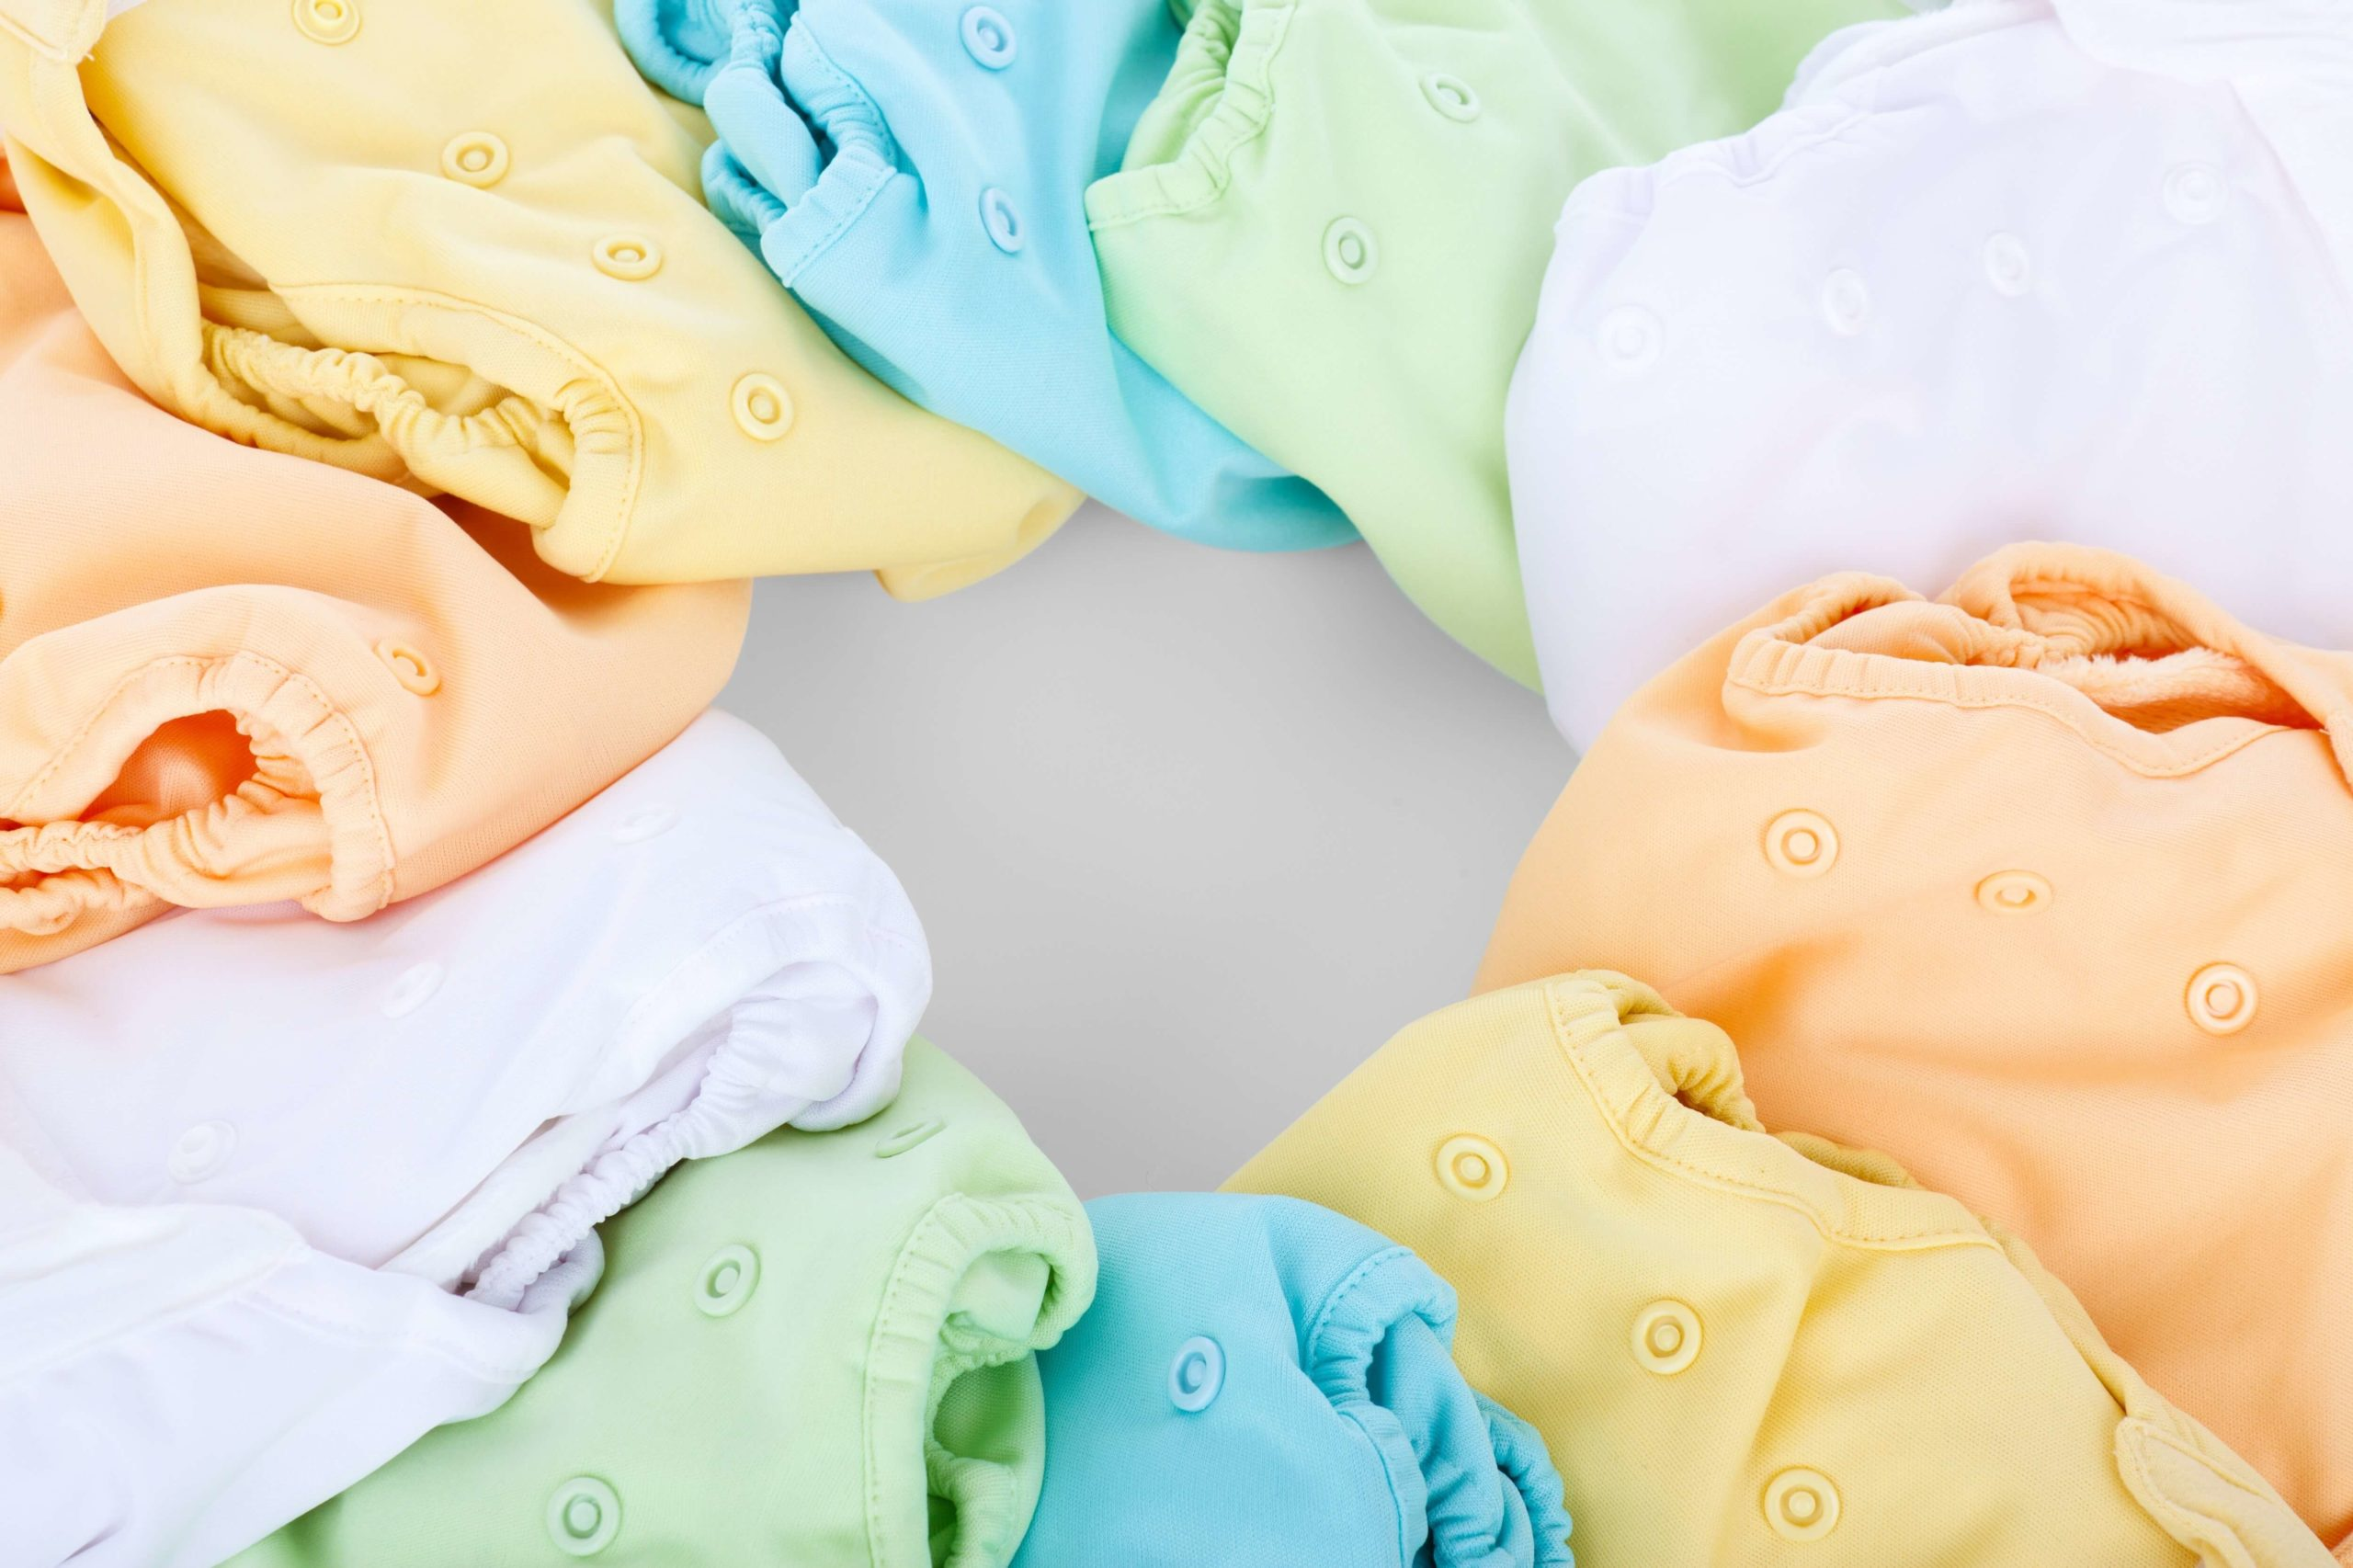 Mini Guide: Starting With Cloth Diapers